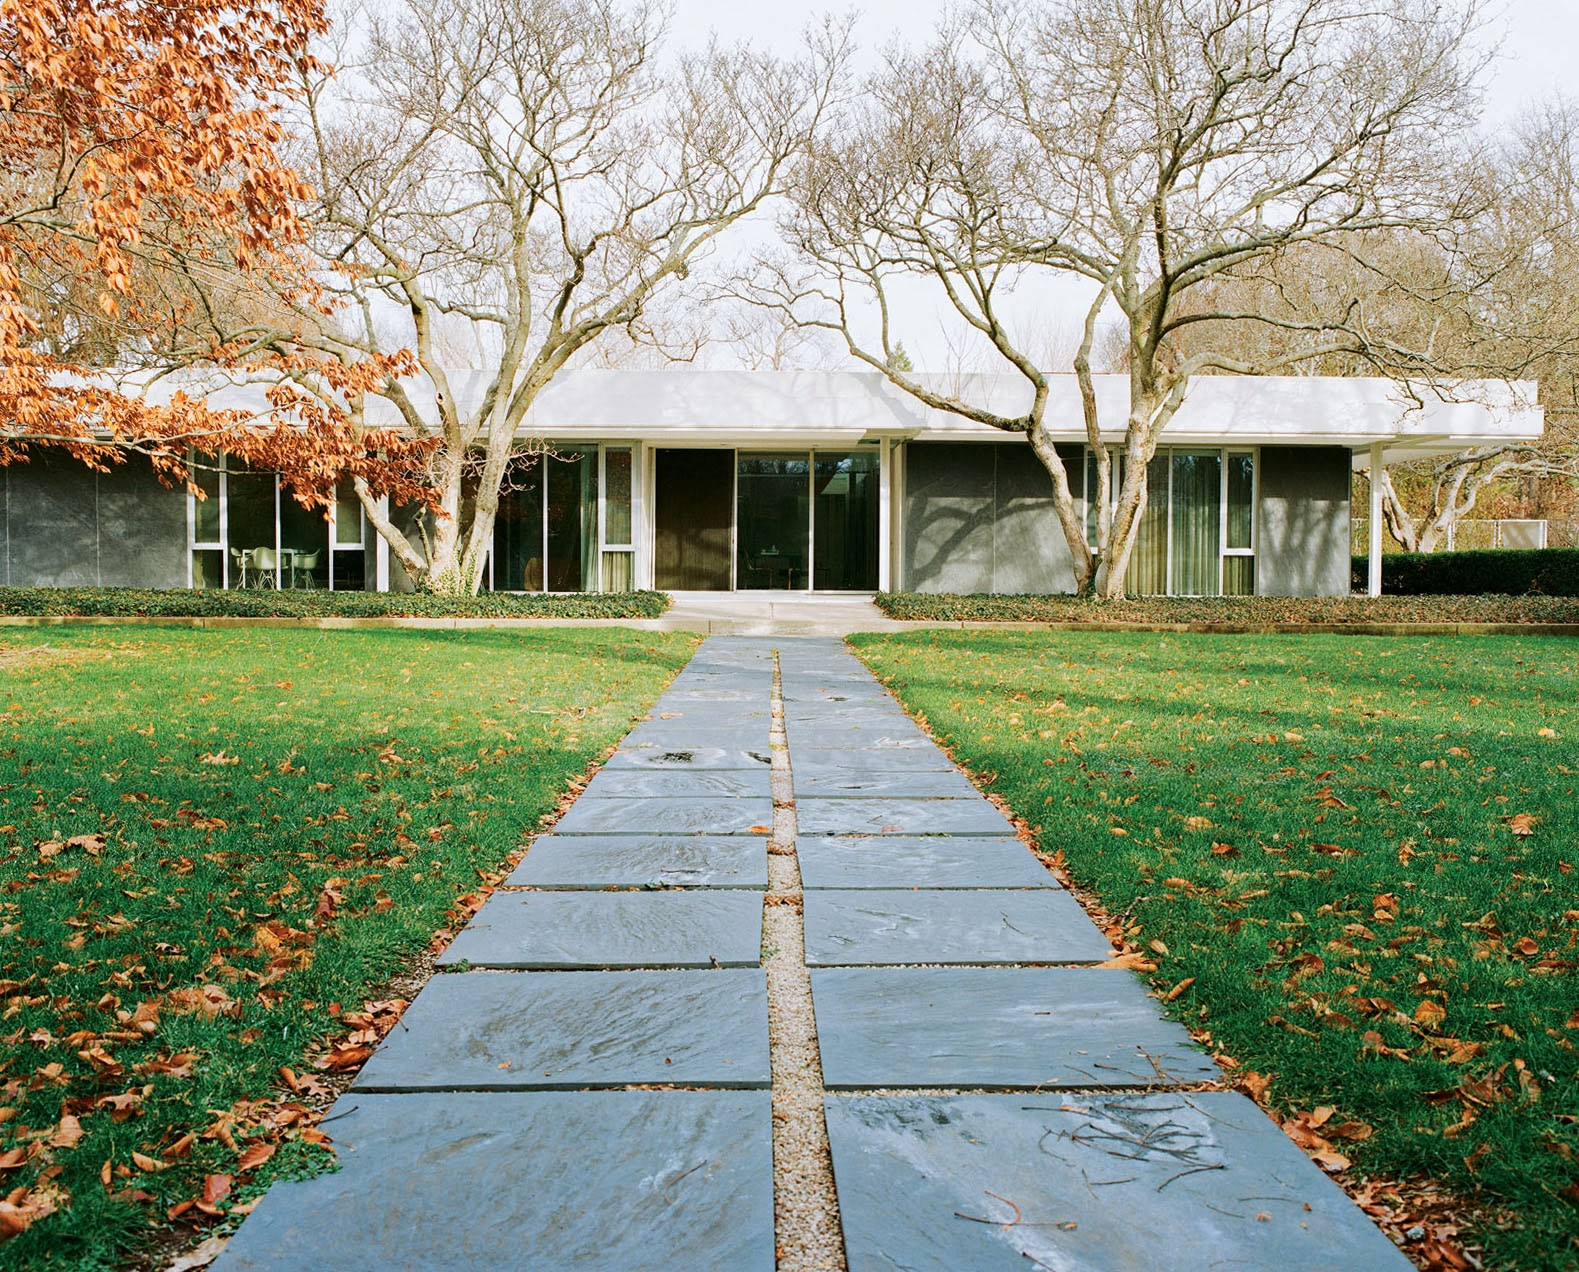 moderne Architektur von Eero Saarinen - das Miller House in Columbus, Indiana